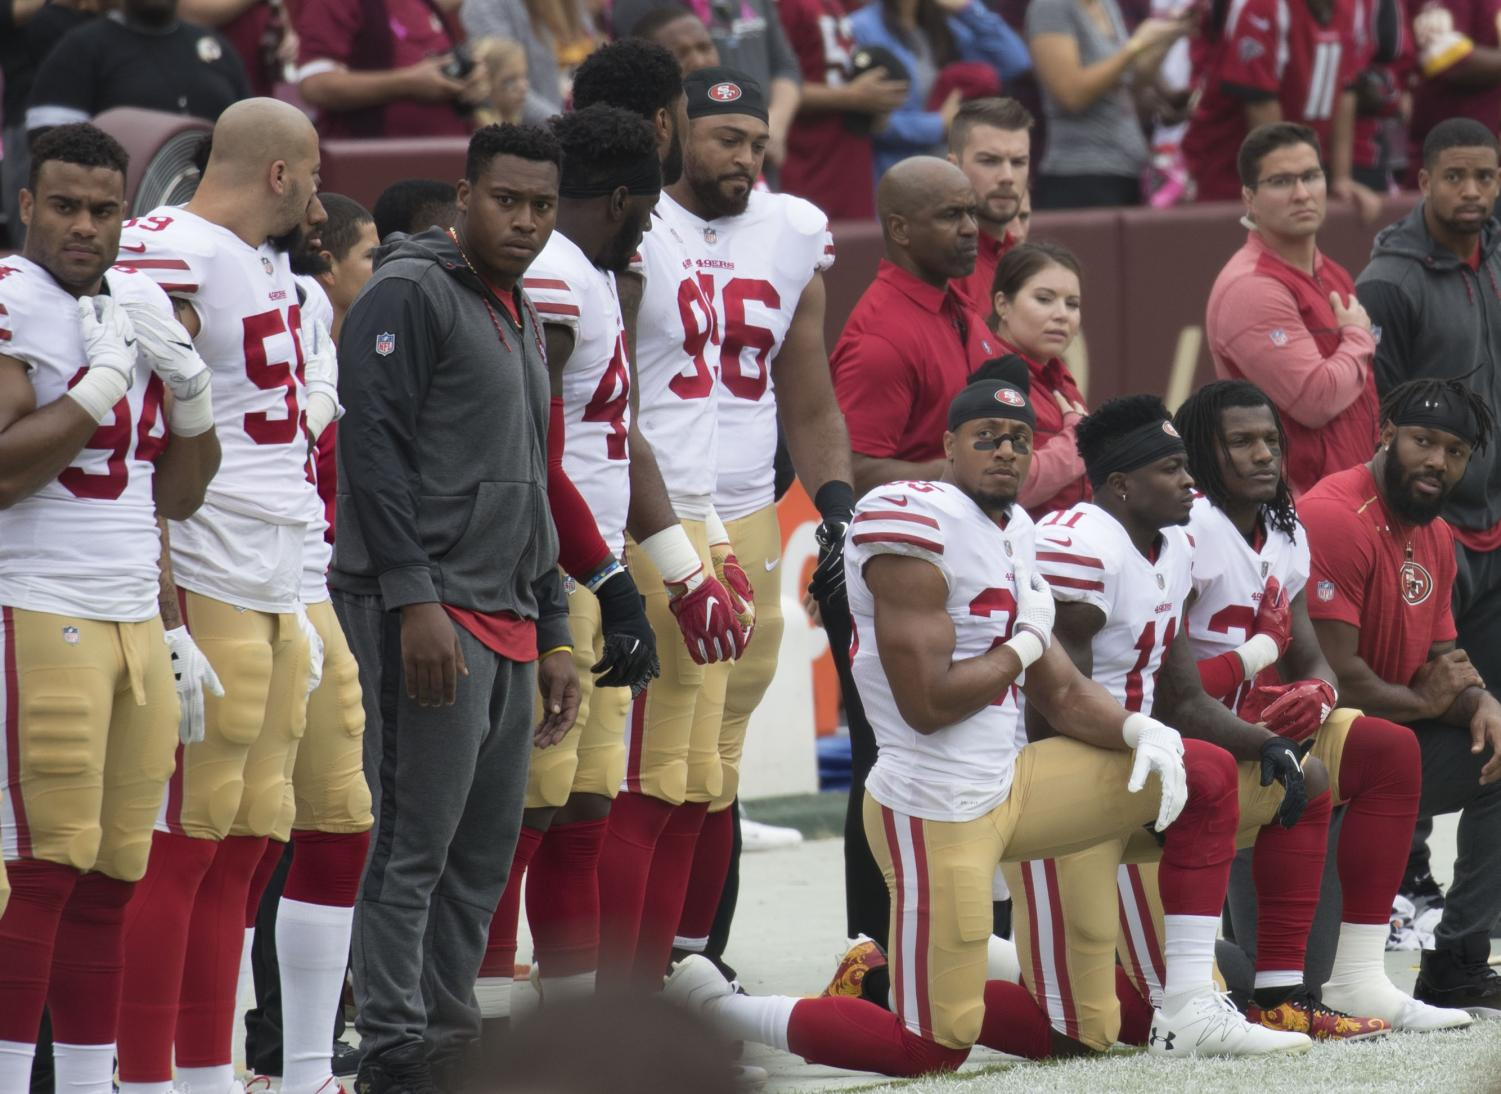 Some members of the San Francisco 49ers kneel during the National Anthem before a game against the Washington Redskins at FedEx Field https://creativecommons.org/licenses/by-sa/2.0/deed.en